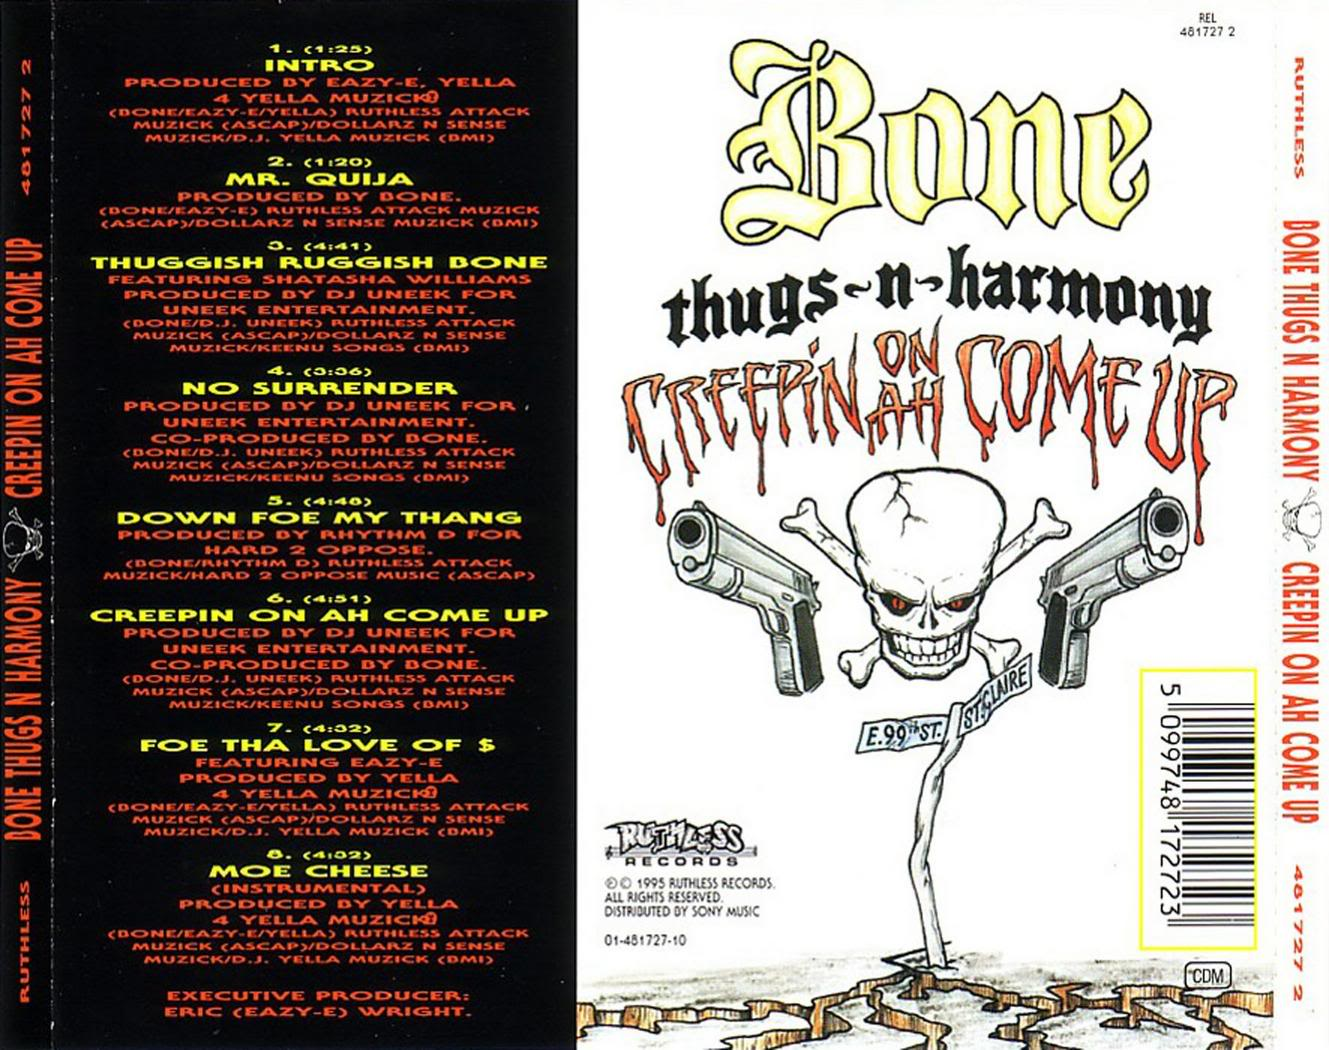 http://3.bp.blogspot.com/-TDbPsFje_4U/UMB09h56-nI/AAAAAAAACA8/CwEUZiSfxMc/s1600/Bone+Thugs-N-Harmony+-+Creepin%60+On+Ah+Come+Up+EP+%5B1994%5D--Back.jpg